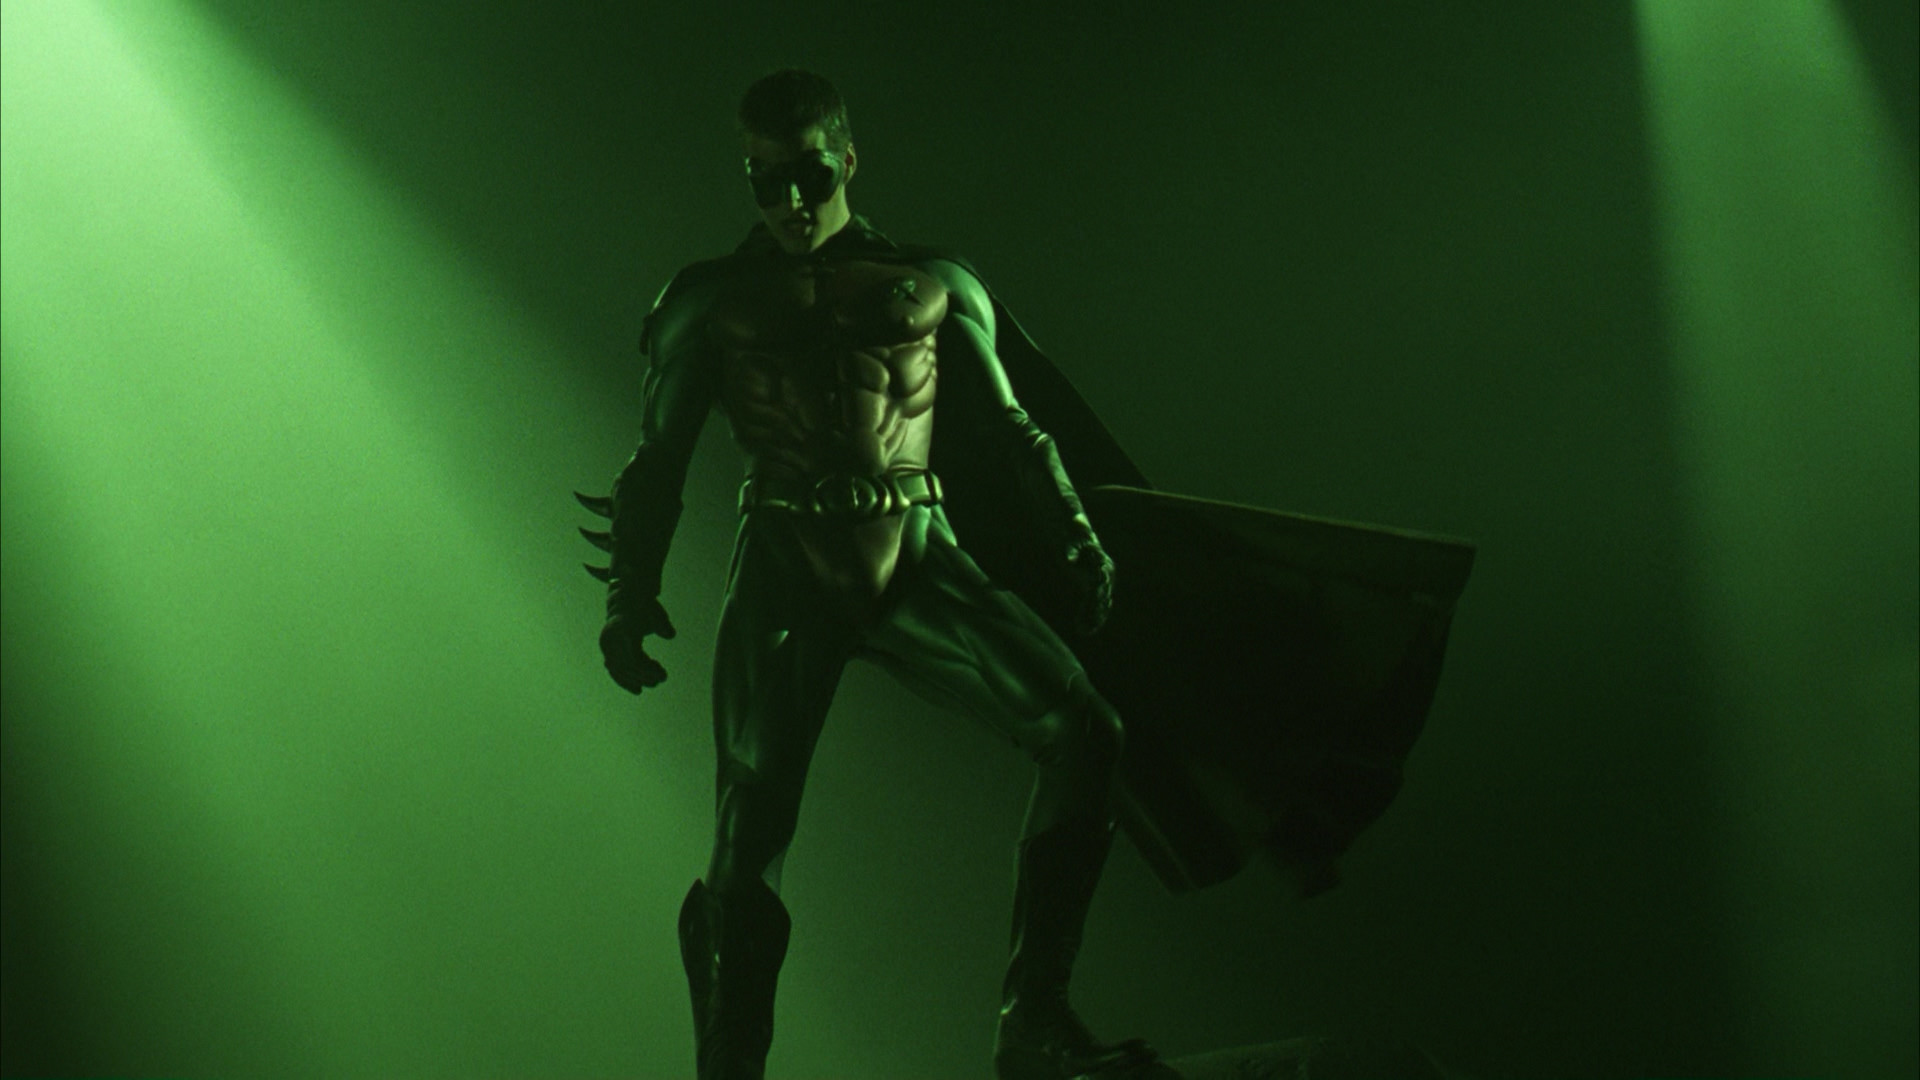 The climax of the movie begins when Two-Face and the Riddler break into  Wayne Manor, where the Riddler tells Two-Face and his men not to kill  anyone.